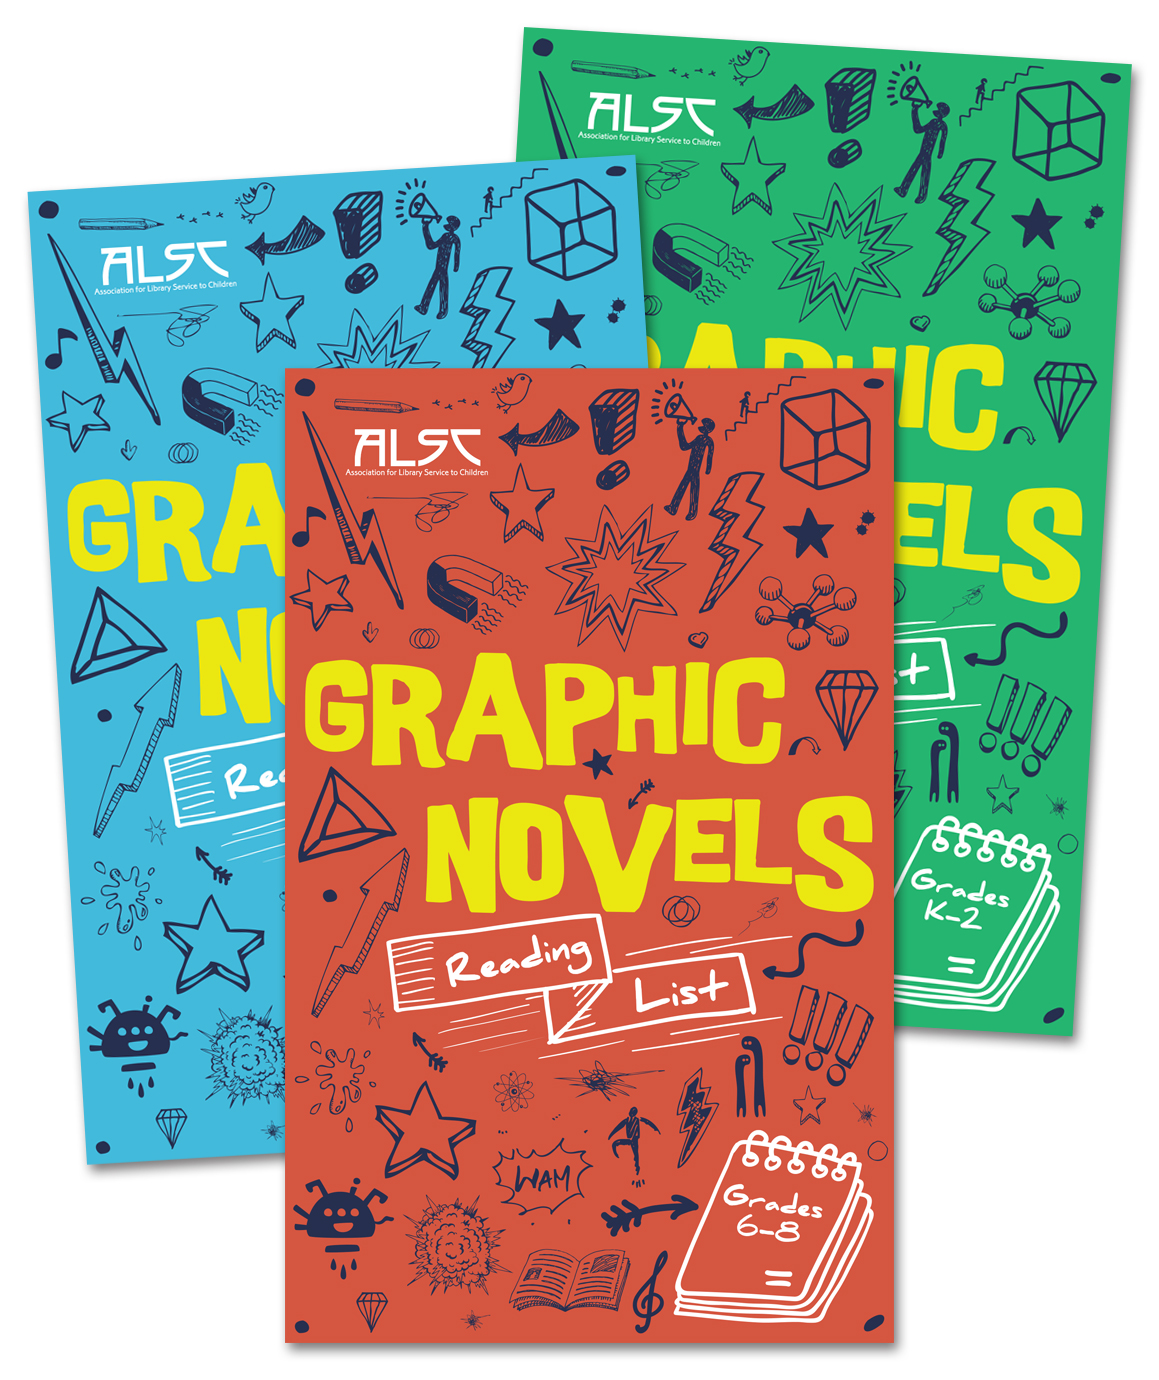 ALSC announces new Graphic Novels Reading Lists | News and